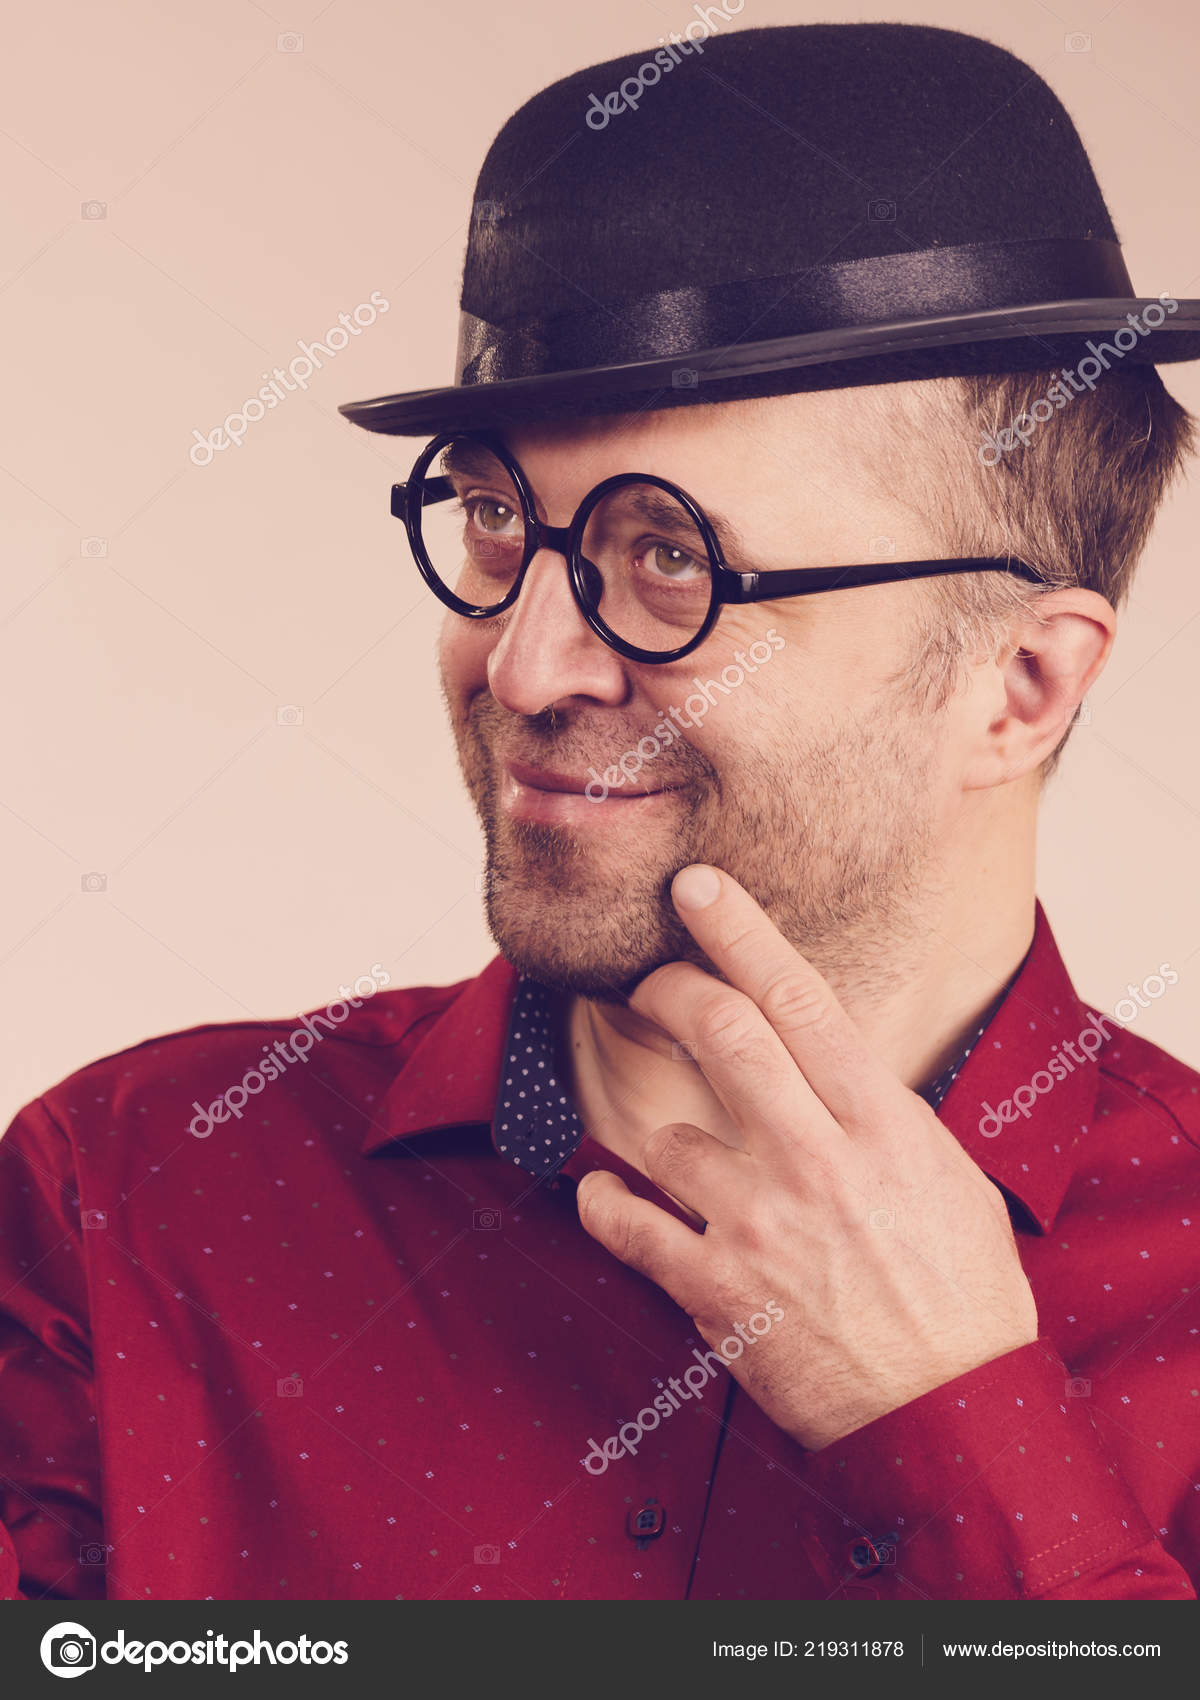 03ffee82aea9b Funny Guy Wearing Eyeglasses Fedora Hat Adult Man Having Weird — Stock Photo